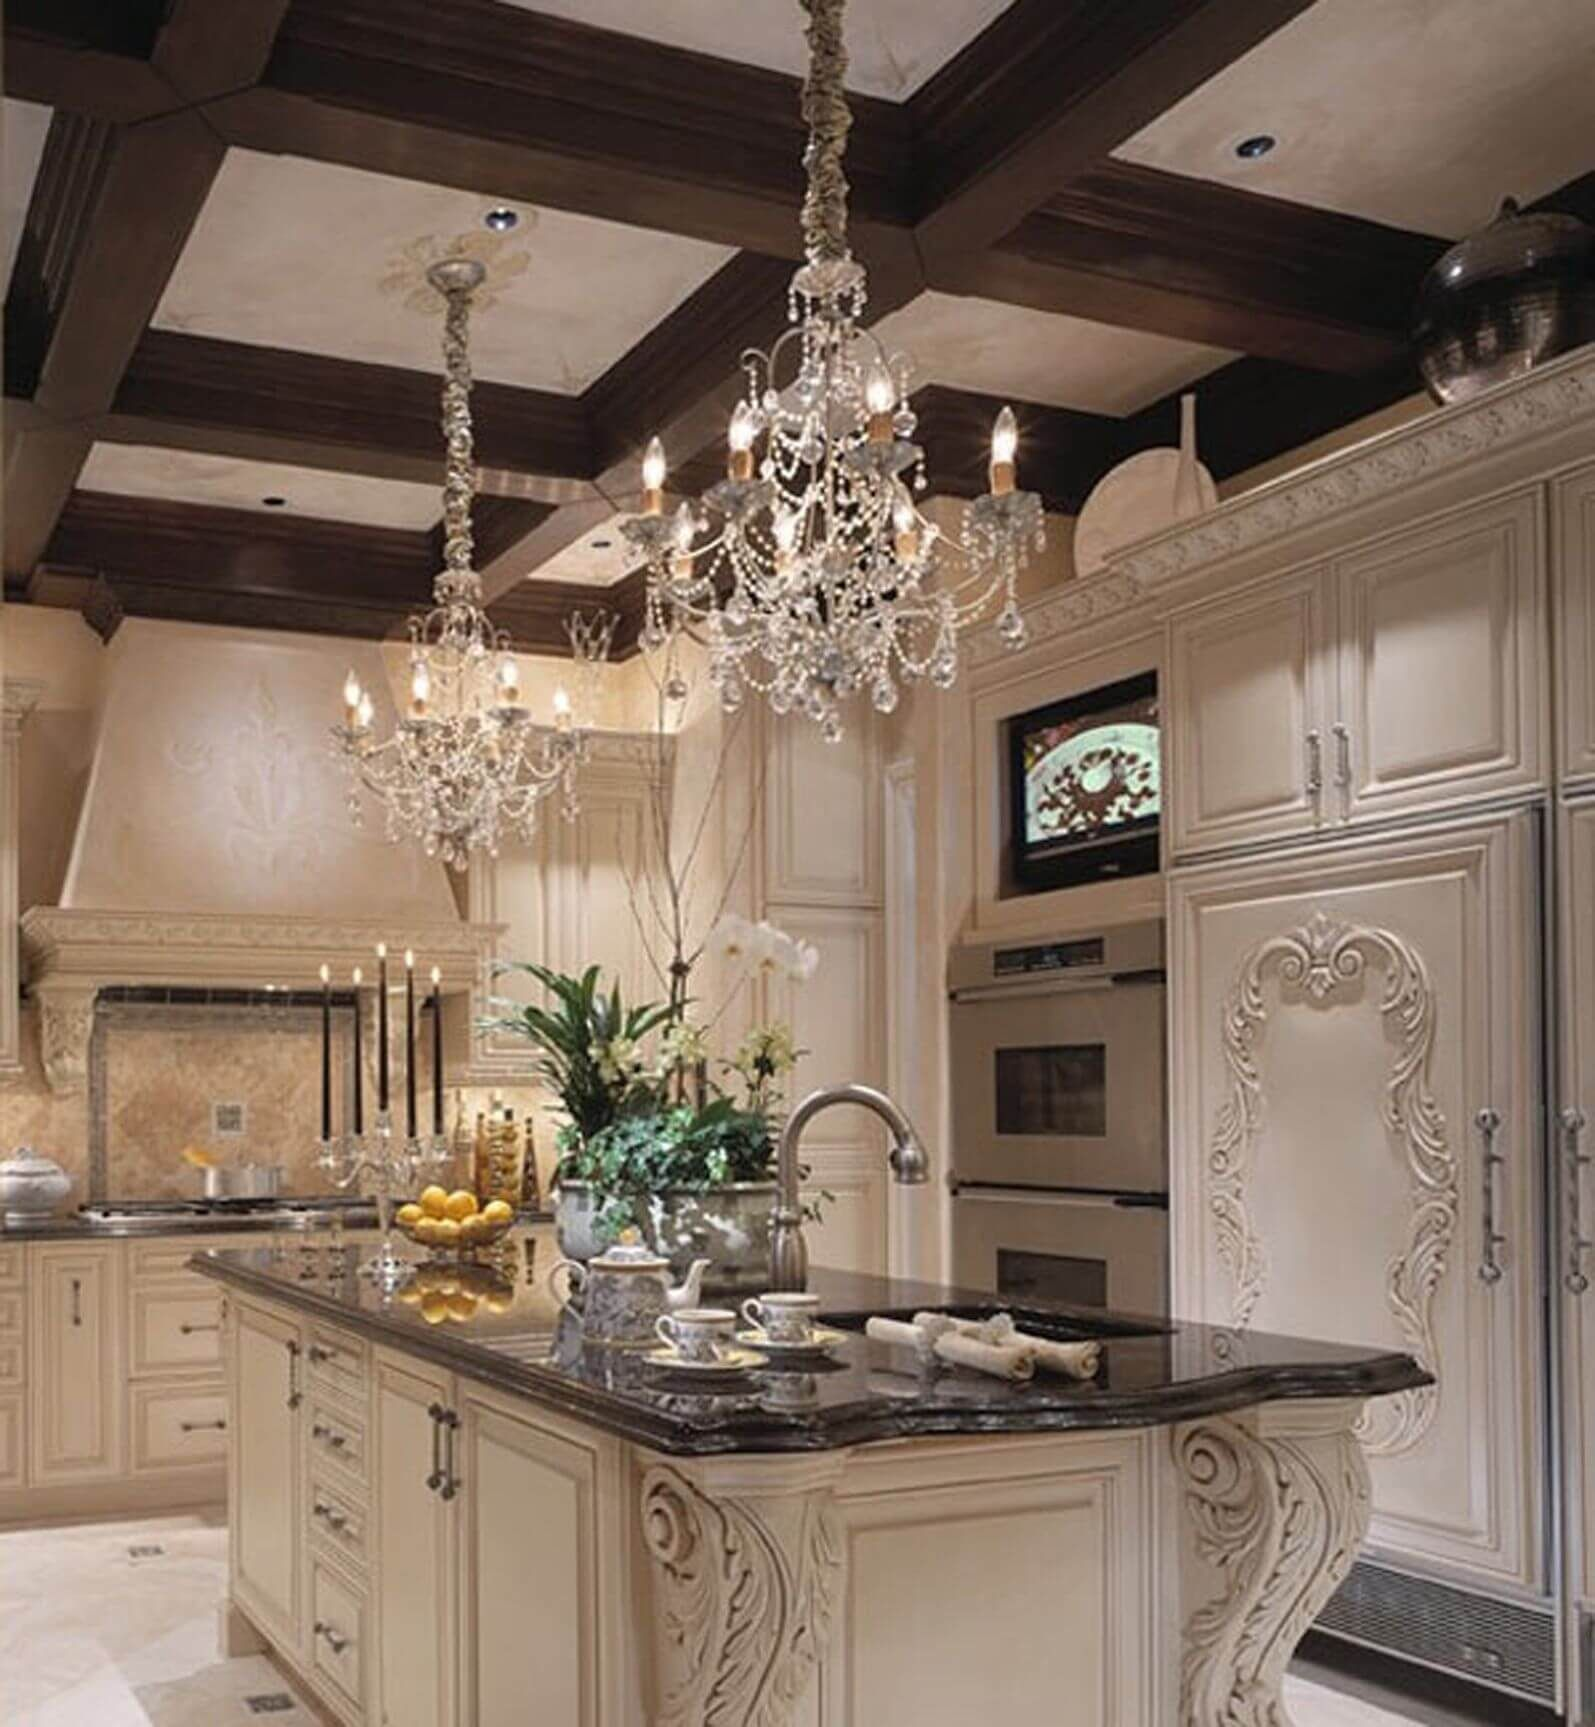 Traditionally Ornate Look In This Kitchen, With Filigreed Wood Details